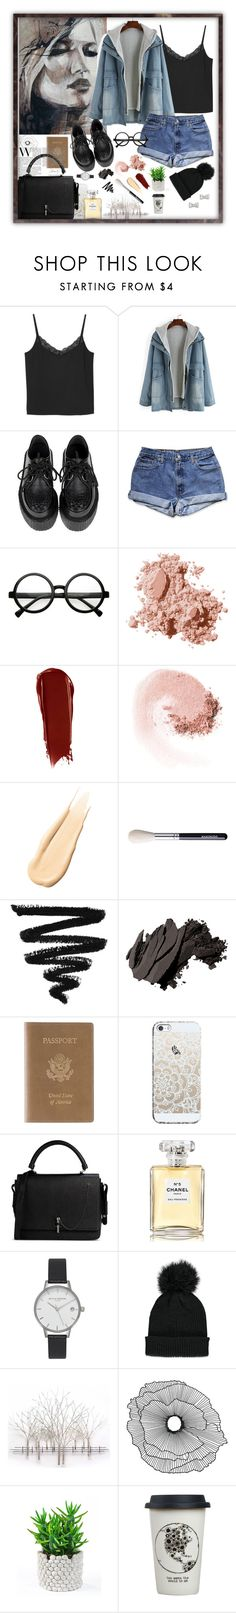 """""""Sem título #19"""" by naianycoco ❤ liked on Polyvore featuring Monki, Retrò, Bobbi Brown Cosmetics, NARS Cosmetics, Hourglass Cosmetics, Royce Leather, Casetify, Carven, Chanel and Olivia Burton"""